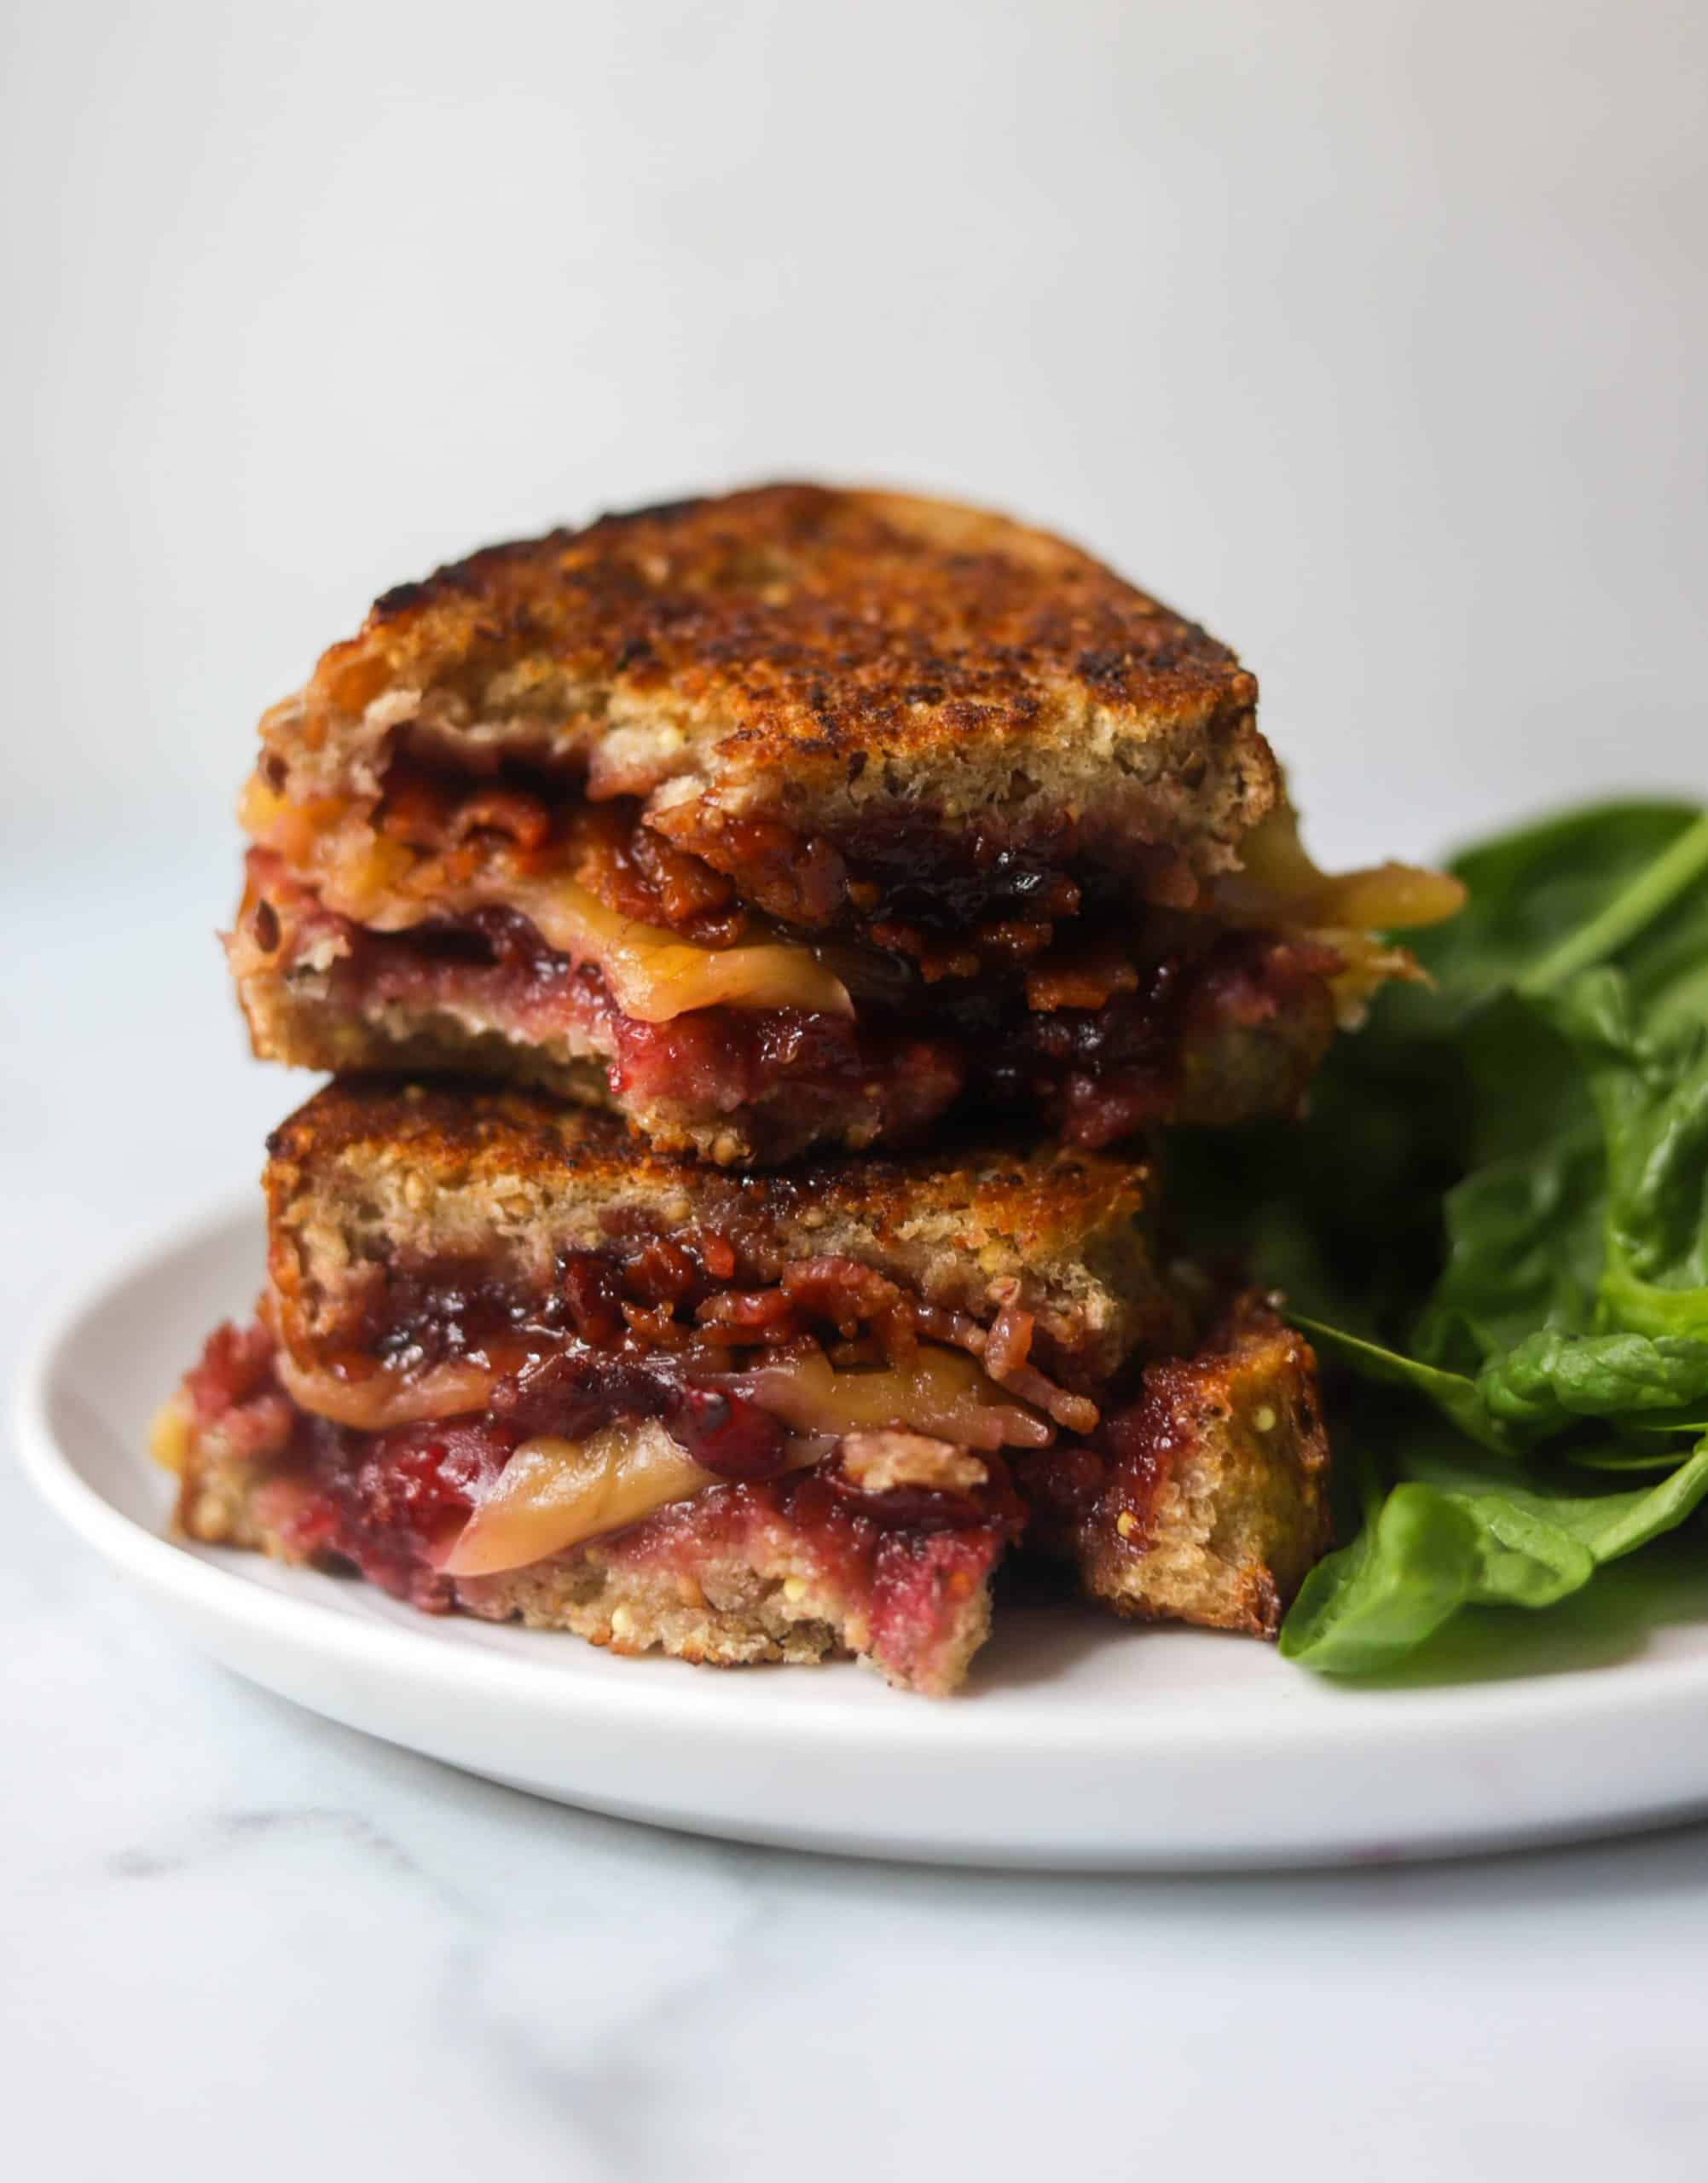 Cherry bacon grilled cheese on a white plate with spinach salad.